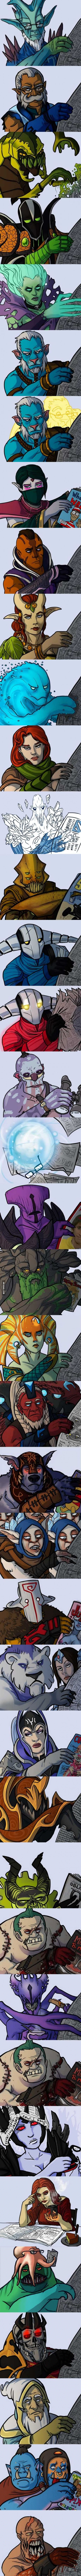 Dota 2 Newspaper ~ credits to outofexile.